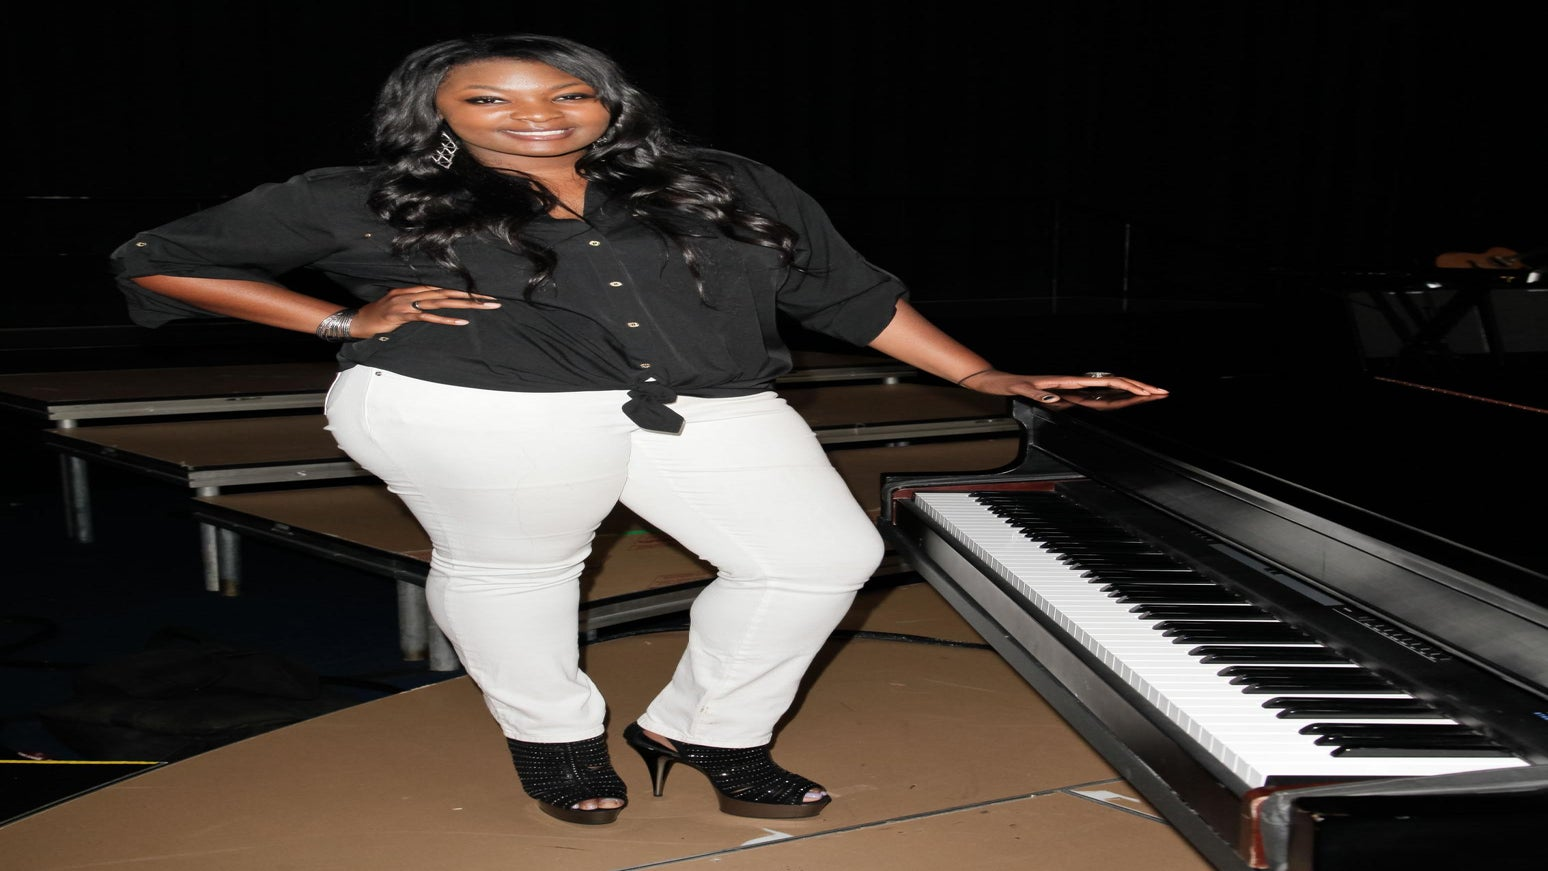 'American Idol' Winner Candice Glover Drops 30 Pounds